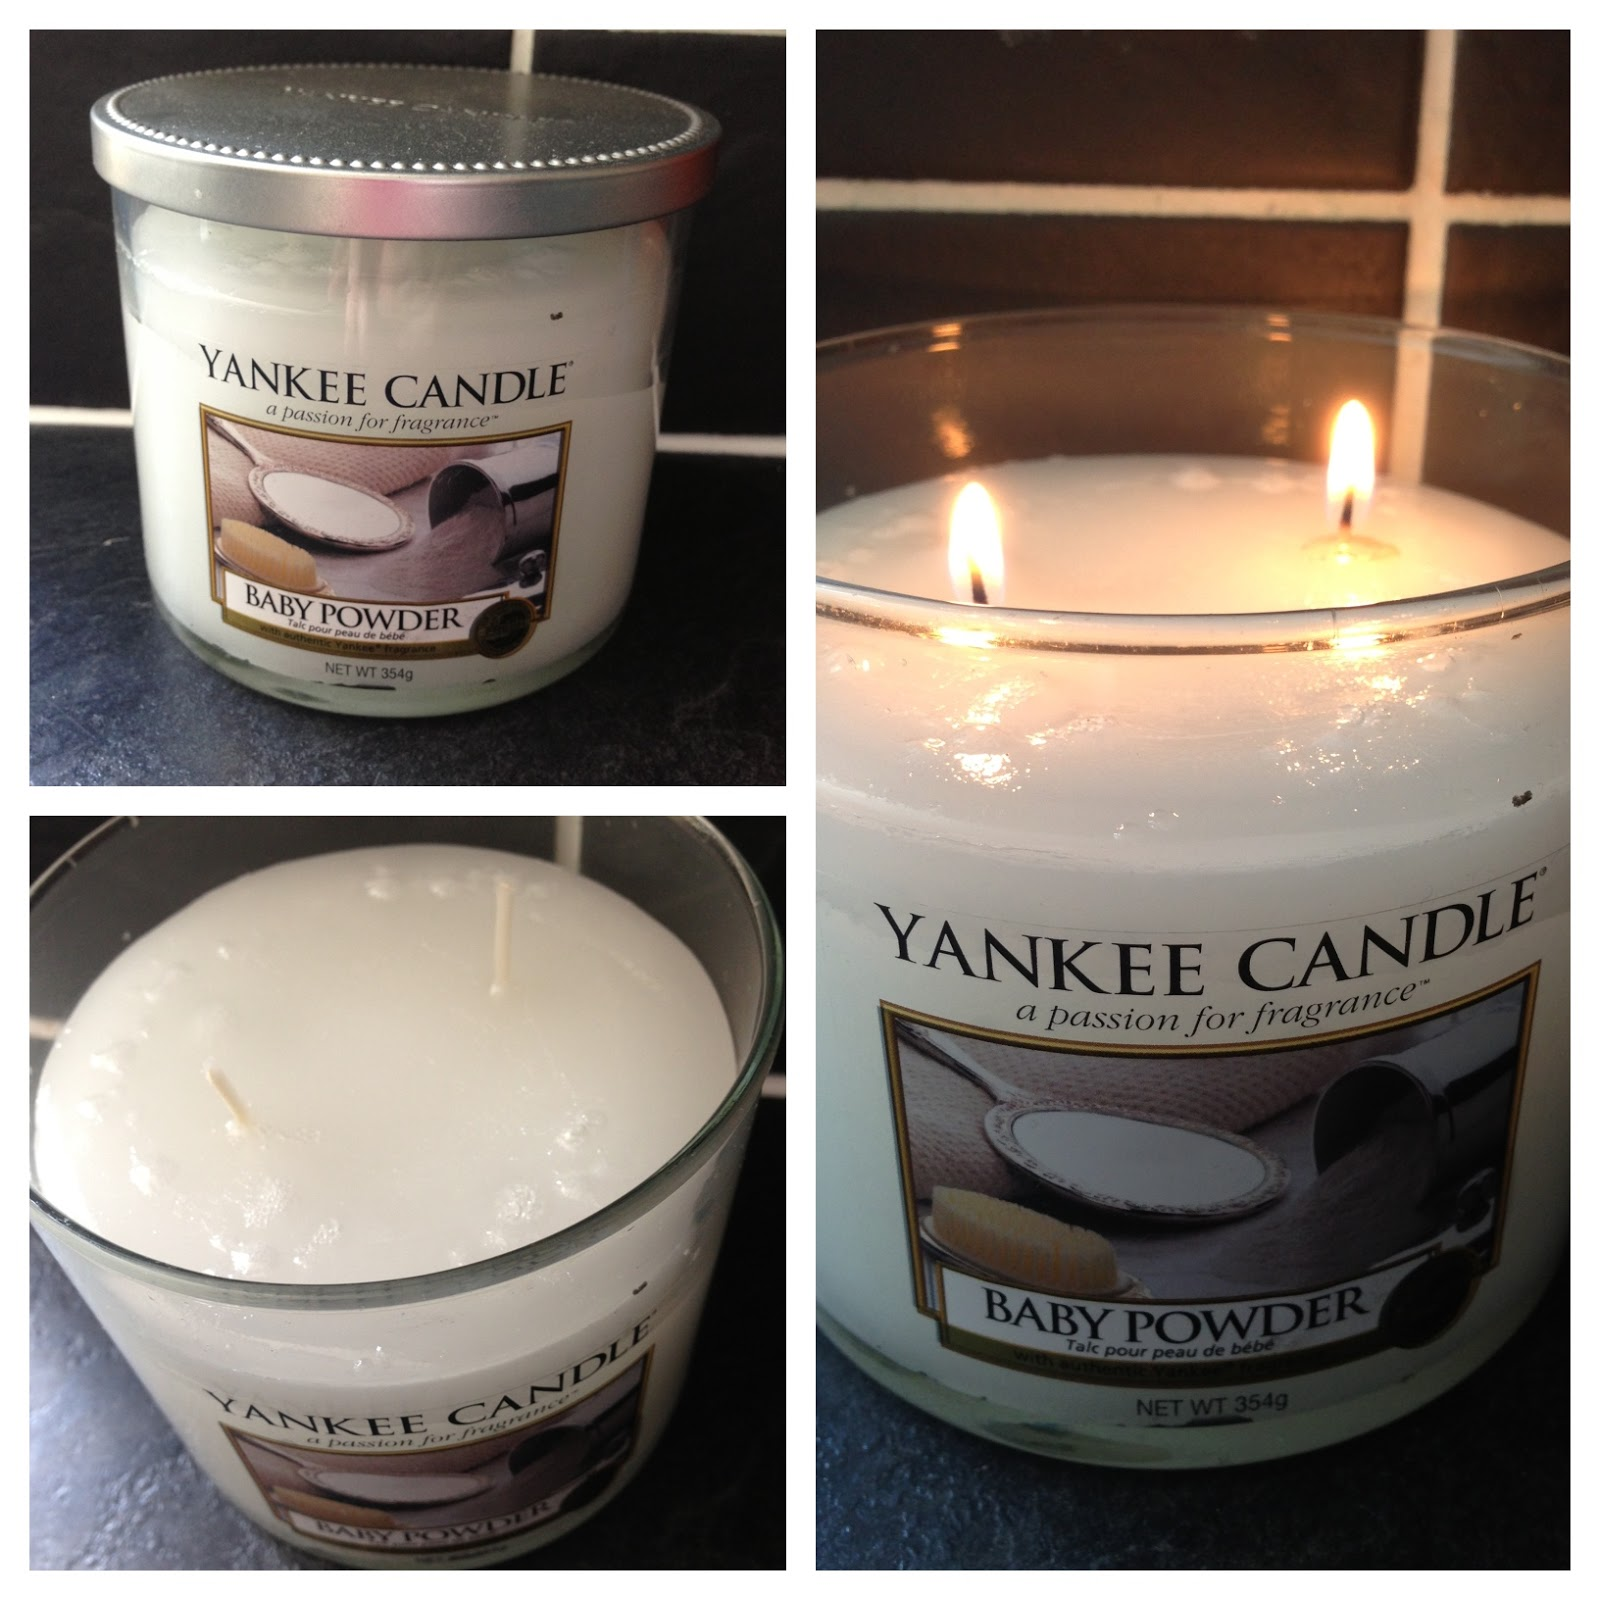 Multi Wick Candles Making Your Home Smell Divine Chelseamamma